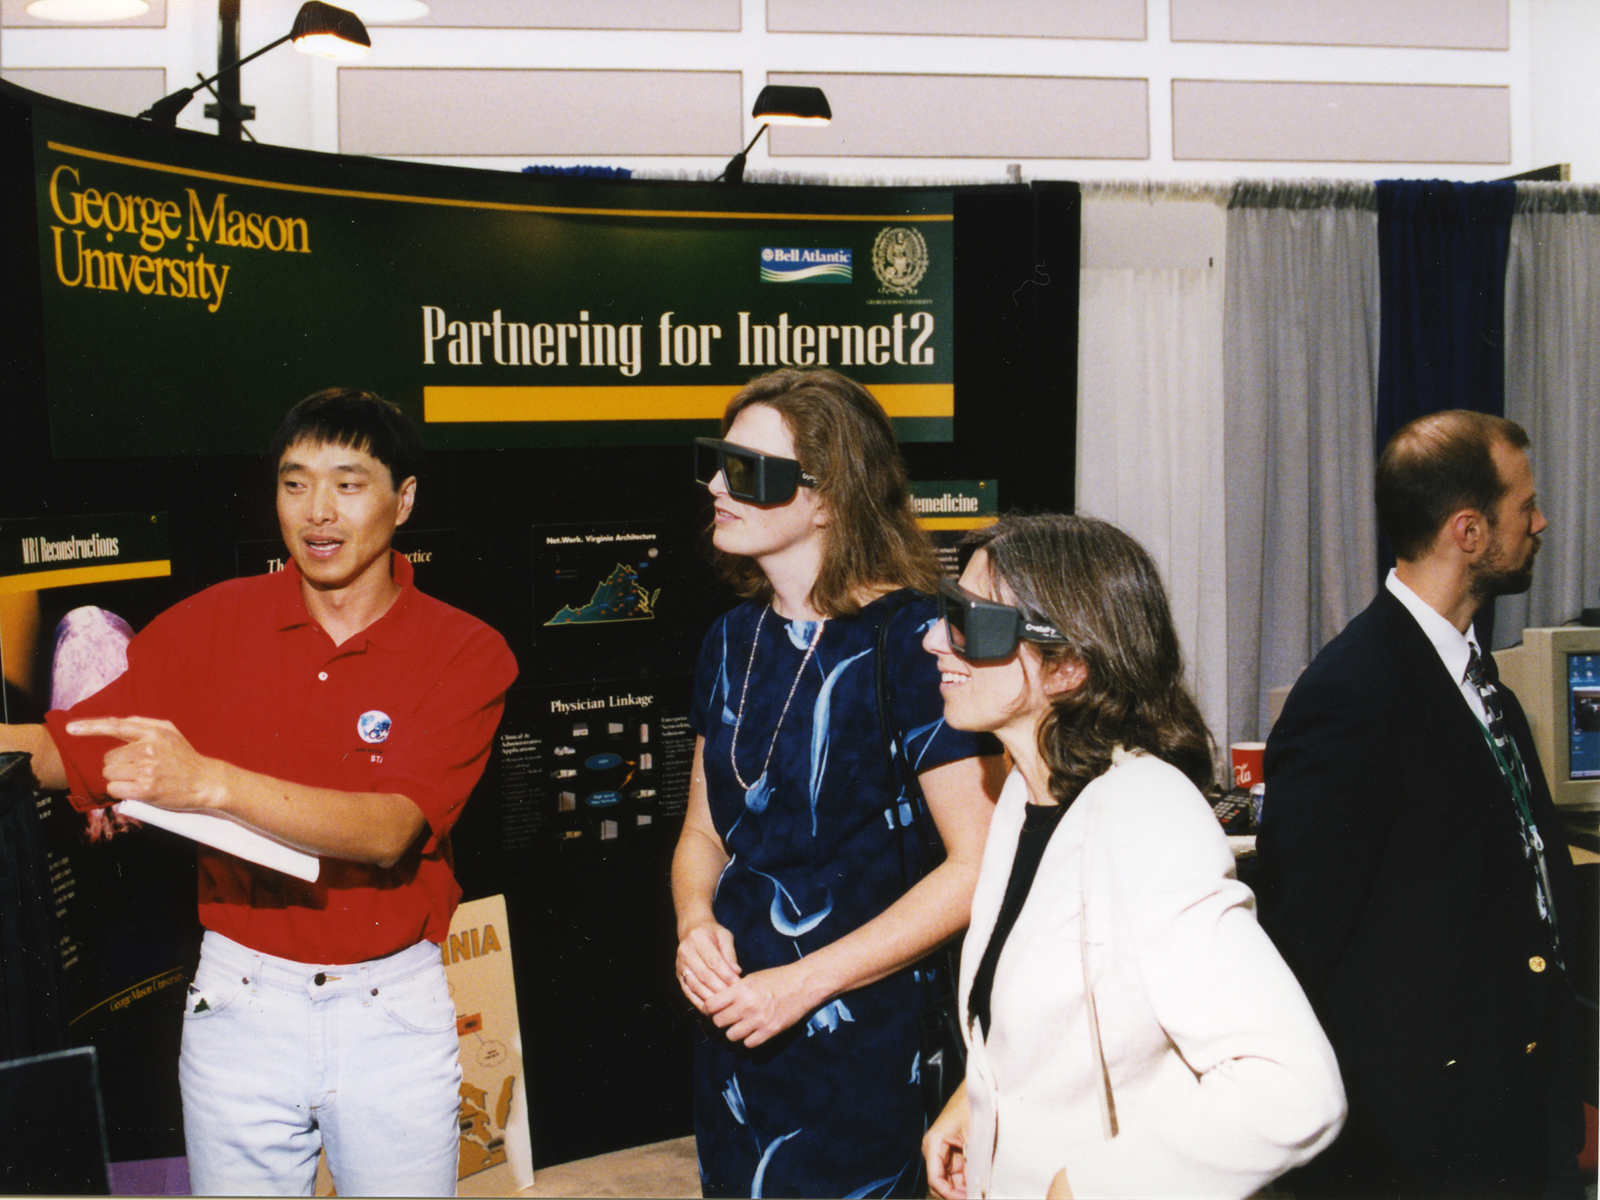 Virtual reality equipment demonstration, World Conference on Information Technology, George Mason University, 1998